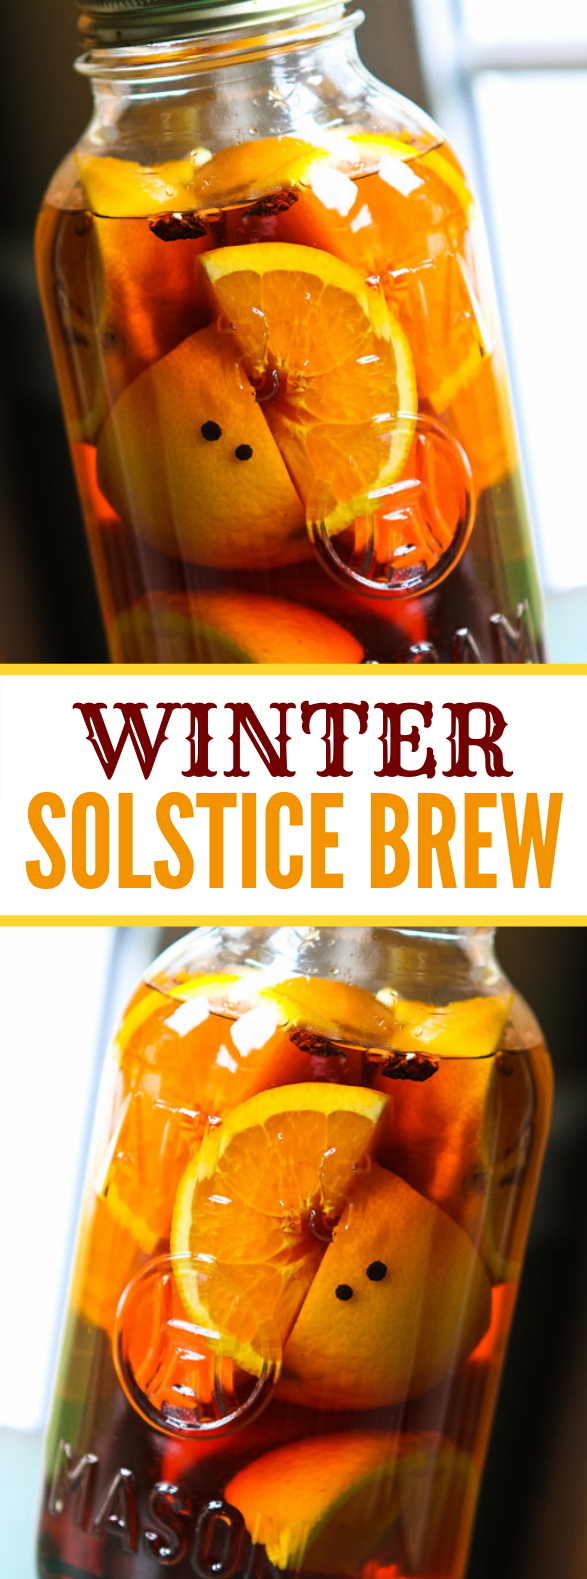 Winter Solstice Brew #christmas #drinks